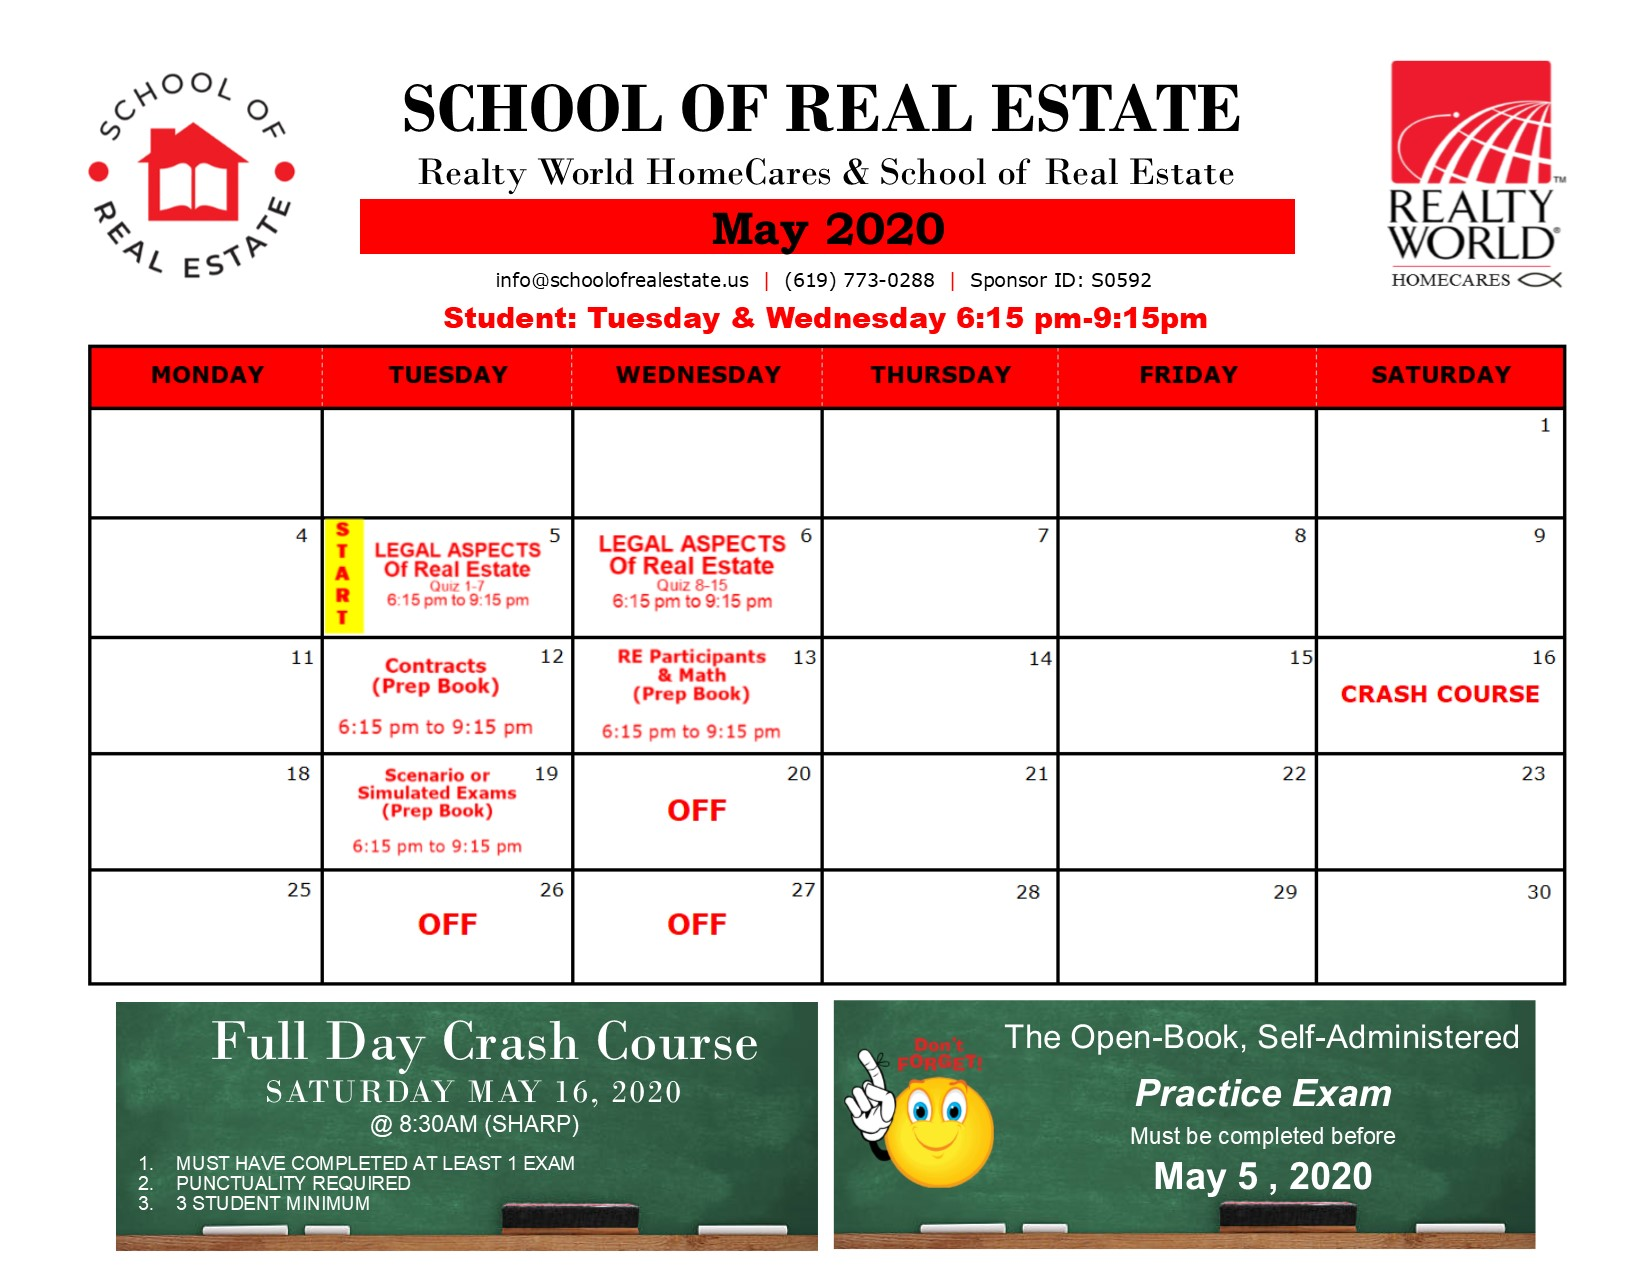 SchoolOfRealEstate_Newsletter_2020May